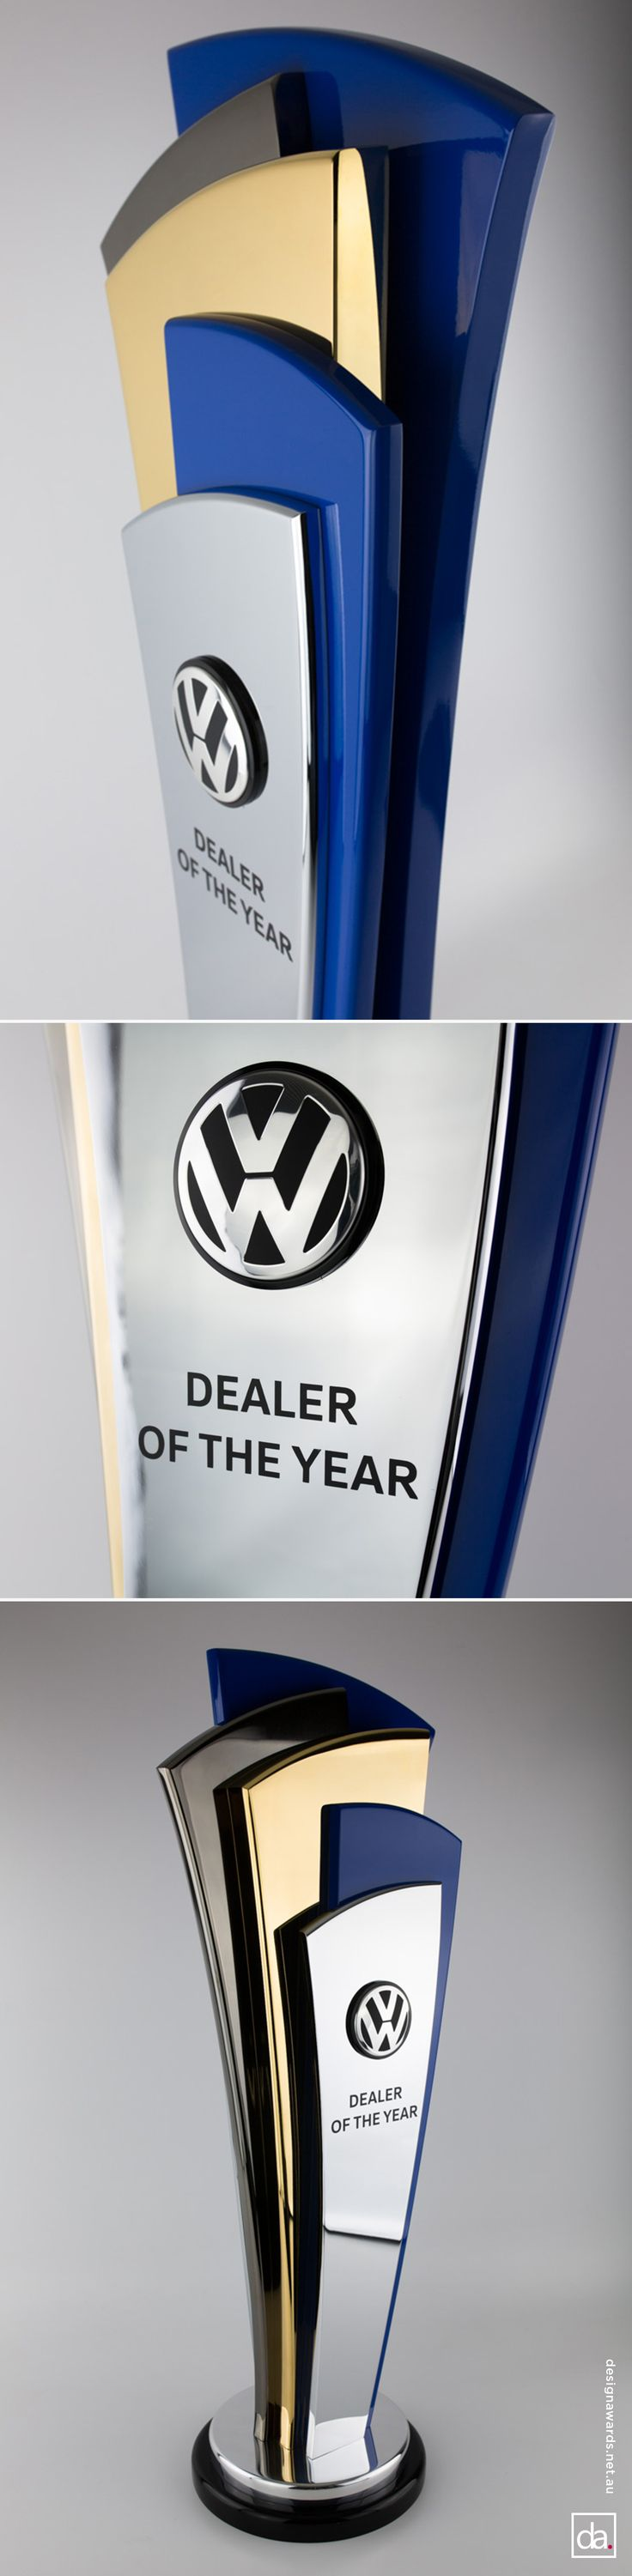 Unity tall modern trophy creative design beautiful materials not glass - Volkswagen Australia Dealer Of The Year Trophy Design Awards